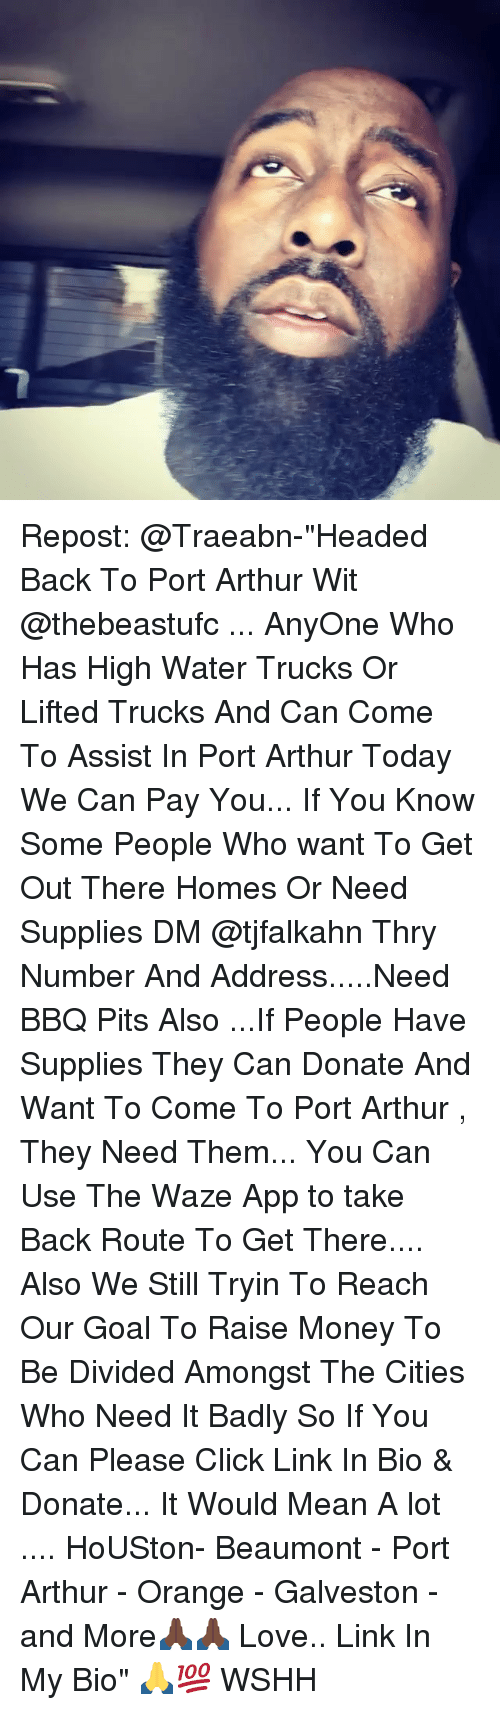 "Arthur, Click, and Love: Repost: @Traeabn-""Headed Back To Port Arthur Wit @thebeastufc ... AnyOne Who Has High Water Trucks Or Lifted Trucks And Can Come To Assist In Port Arthur Today We Can Pay You... If You Know Some People Who want To Get Out There Homes Or Need Supplies DM @tjfalkahn Thry Number And Address.....Need BBQ Pits Also ...If People Have Supplies They Can Donate And Want To Come To Port Arthur , They Need Them... You Can Use The Waze App to take Back Route To Get There.... Also We Still Tryin To Reach Our Goal To Raise Money To Be Divided Amongst The Cities Who Need It Badly So If You Can Please Click Link In Bio & Donate... It Would Mean A lot .... HoUSton- Beaumont - Port Arthur - Orange - Galveston - and More🙏🏿🙏🏿 Love.. Link In My Bio"" 🙏💯 WSHH"